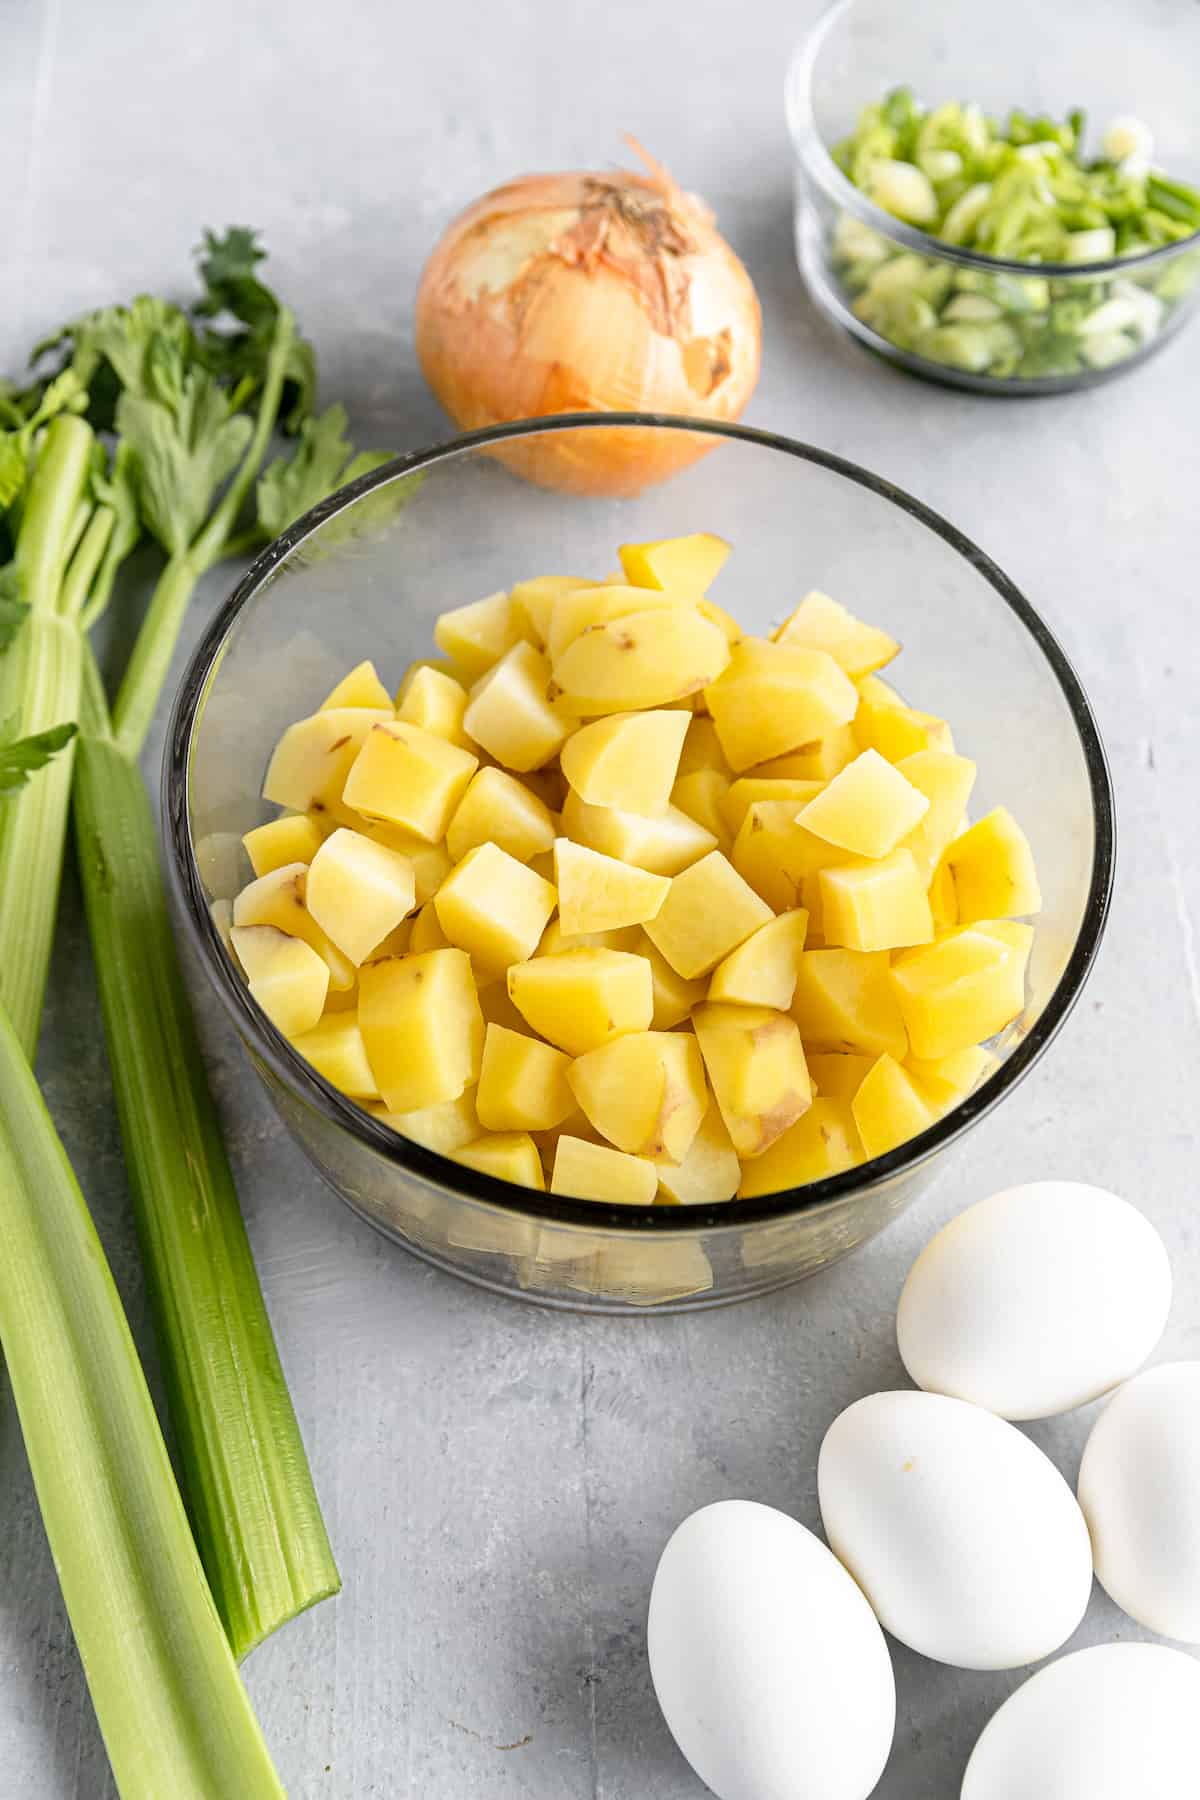 Chopped Potatoes, Hard-Boiled Eggs, a Yellow Onion and the Rest of the Potato Salad Ingredients on a Gray Countertop